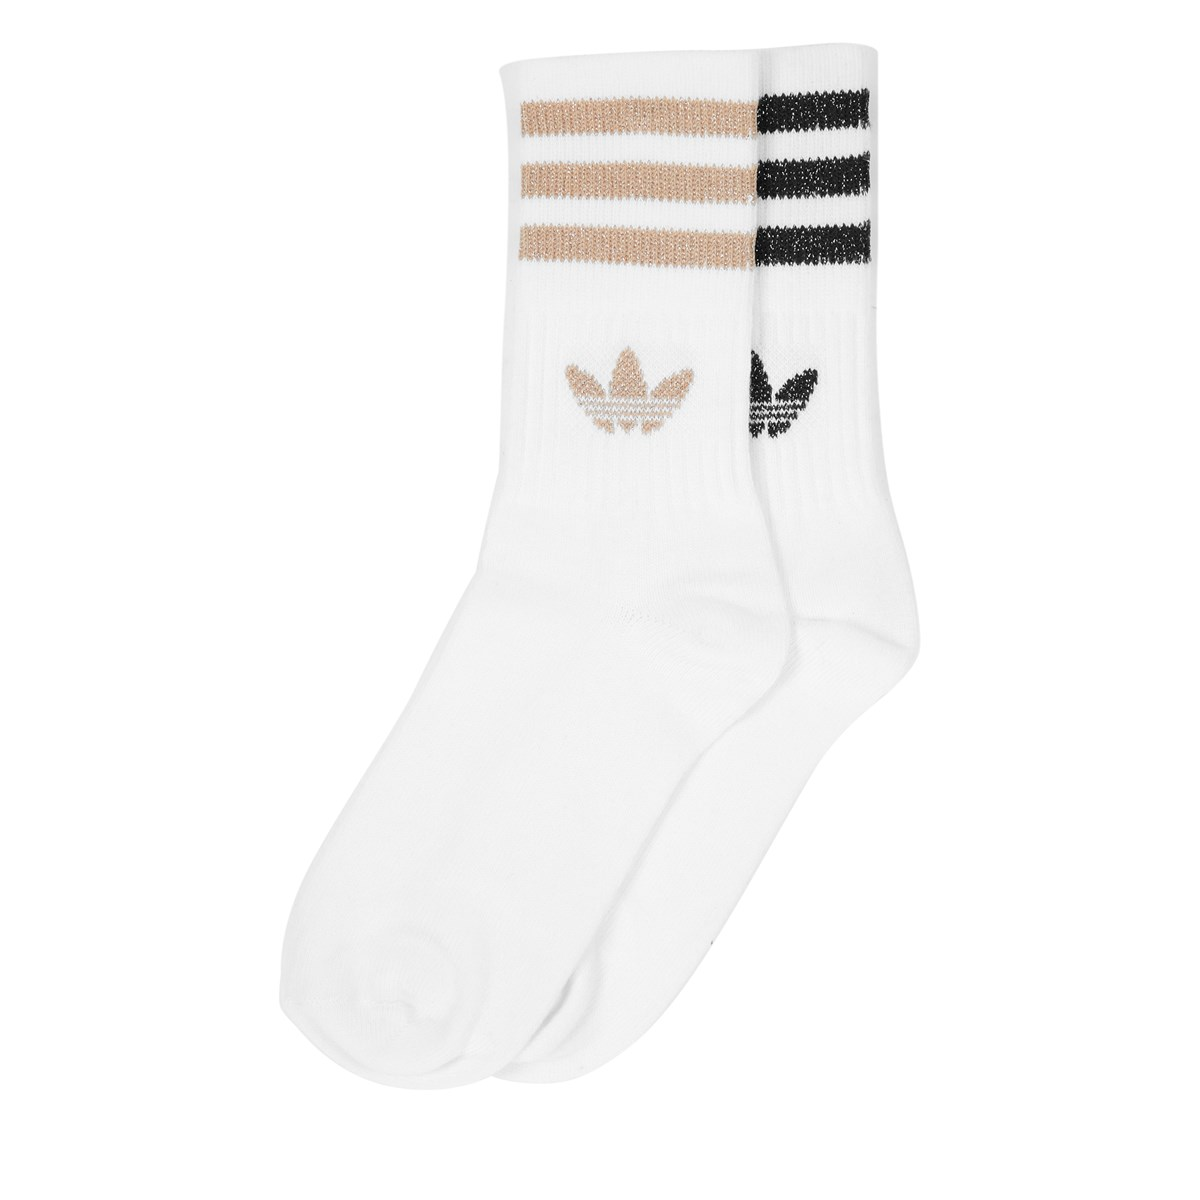 Women's 2 Pair Pack of Mid Cut Crew Socks